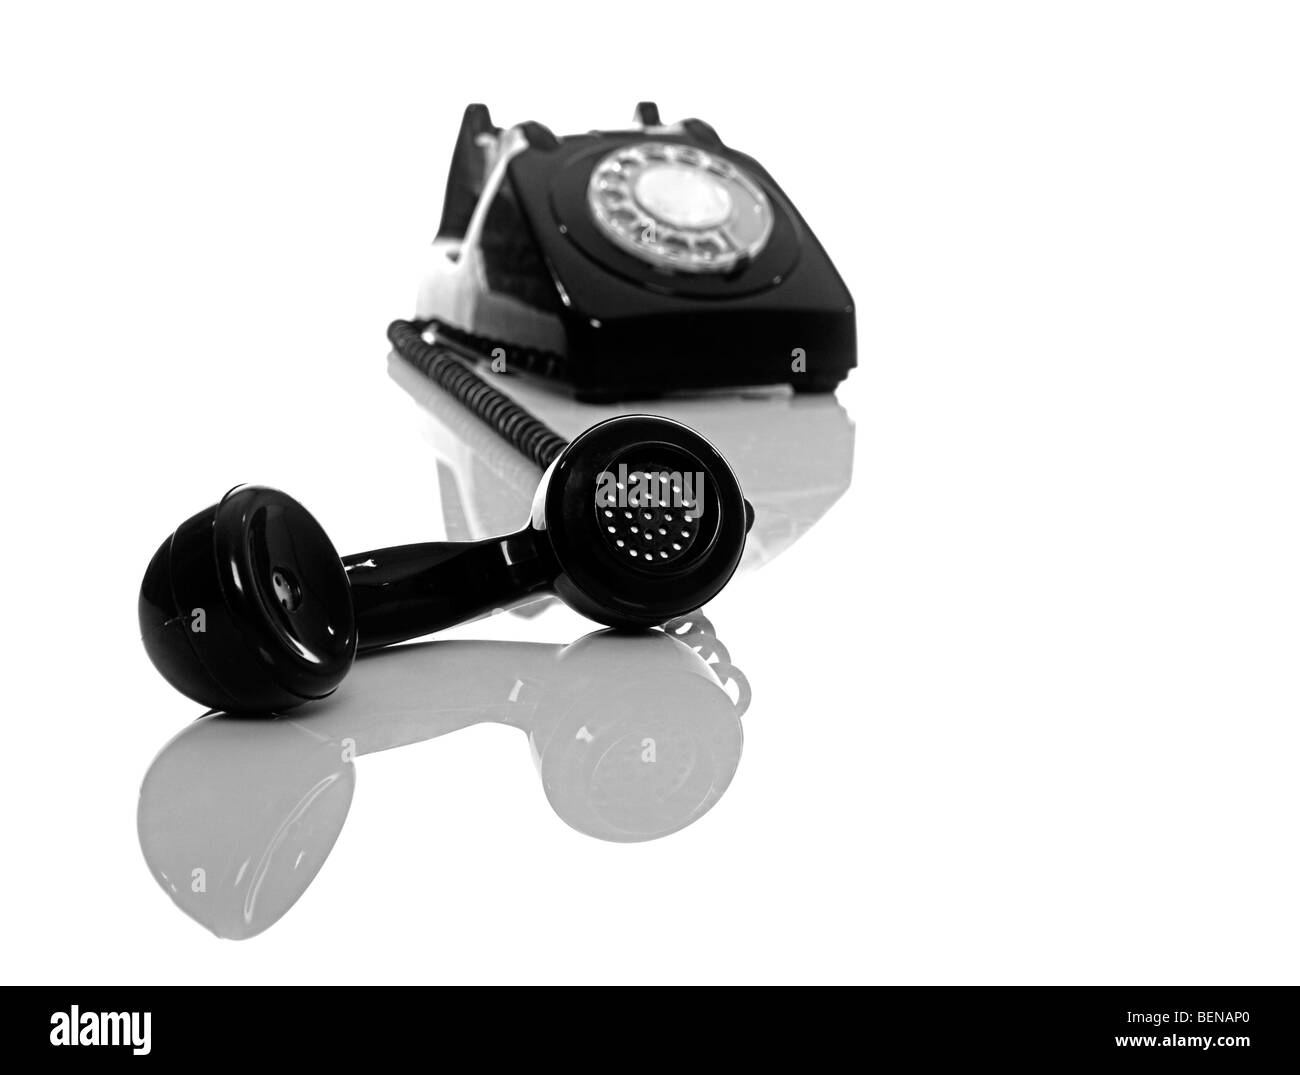 Vintage phone on a white background with reflection - Stock Image